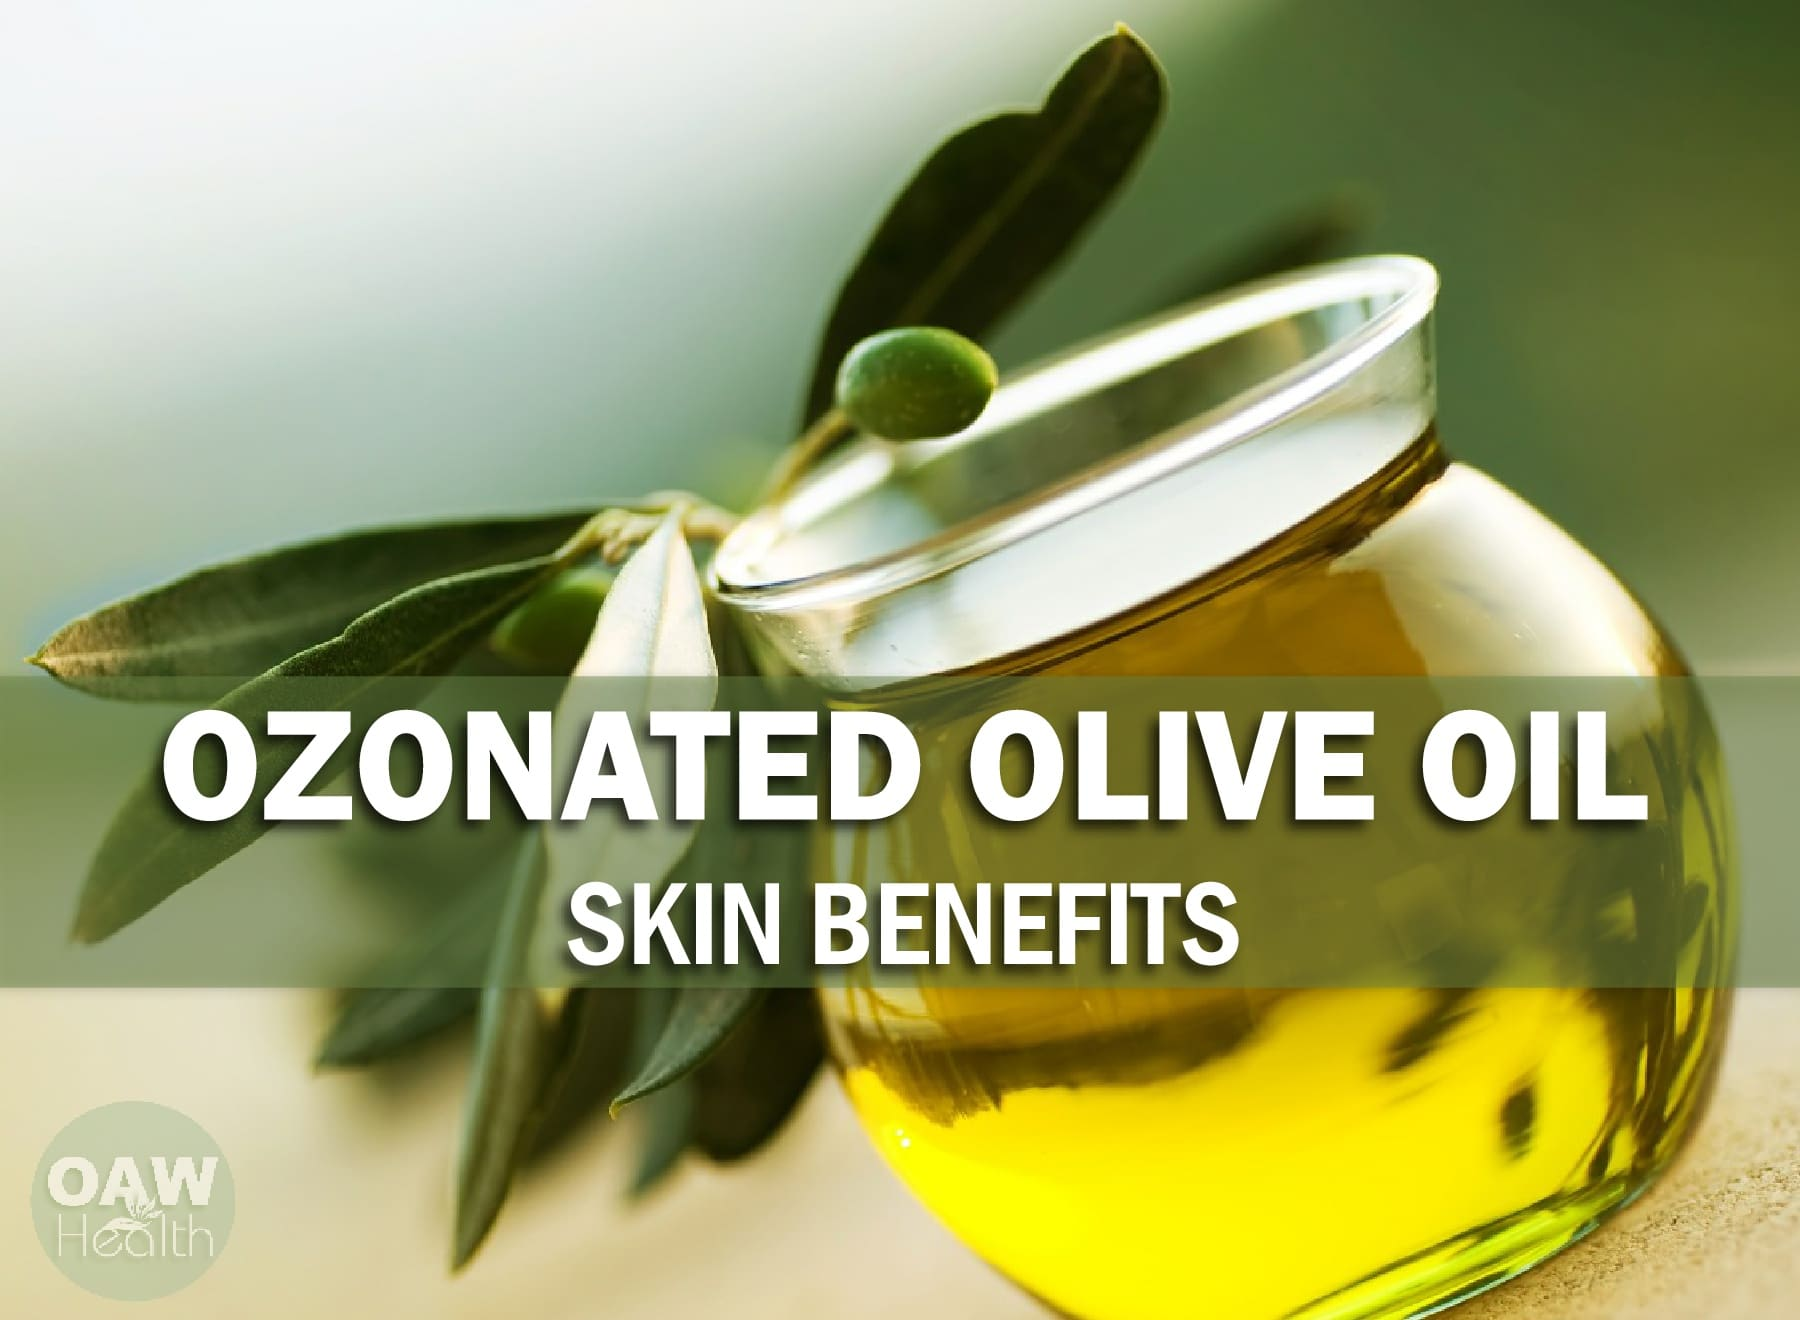 Ozonated Olive Oil Skin Benefits